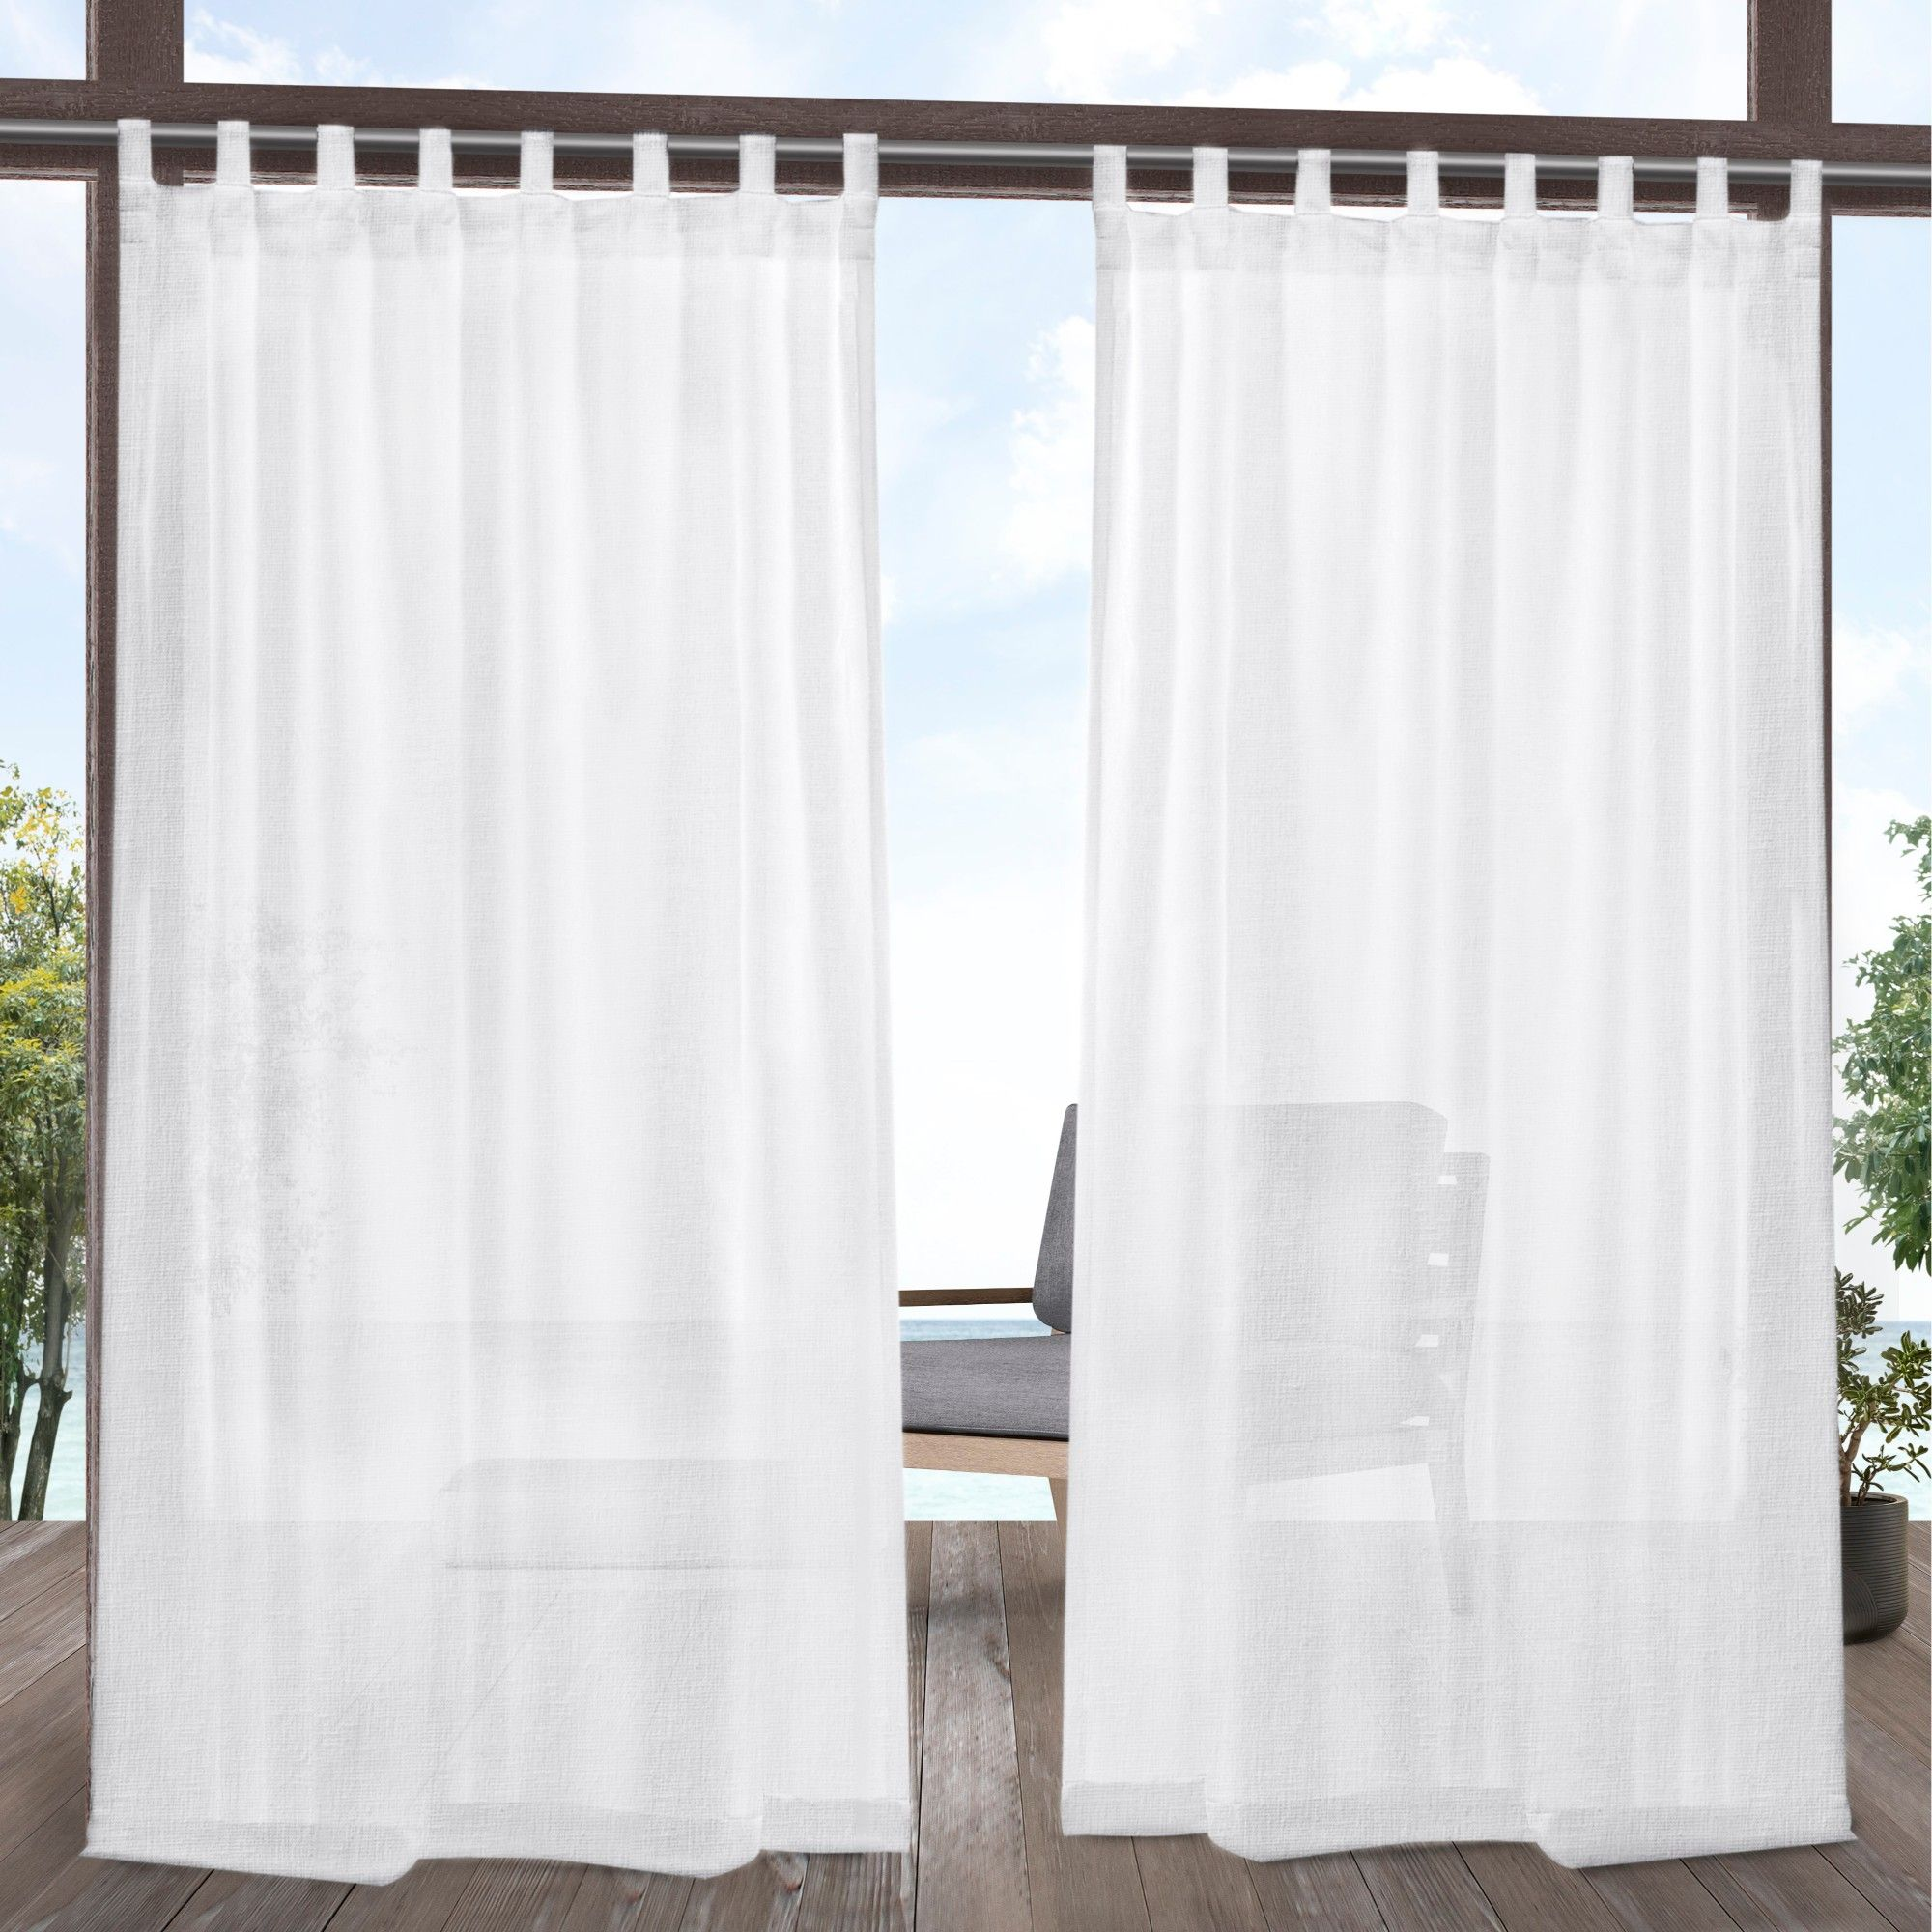 Patio Garden Outdoor Curtains Home Curtains Panel Curtains